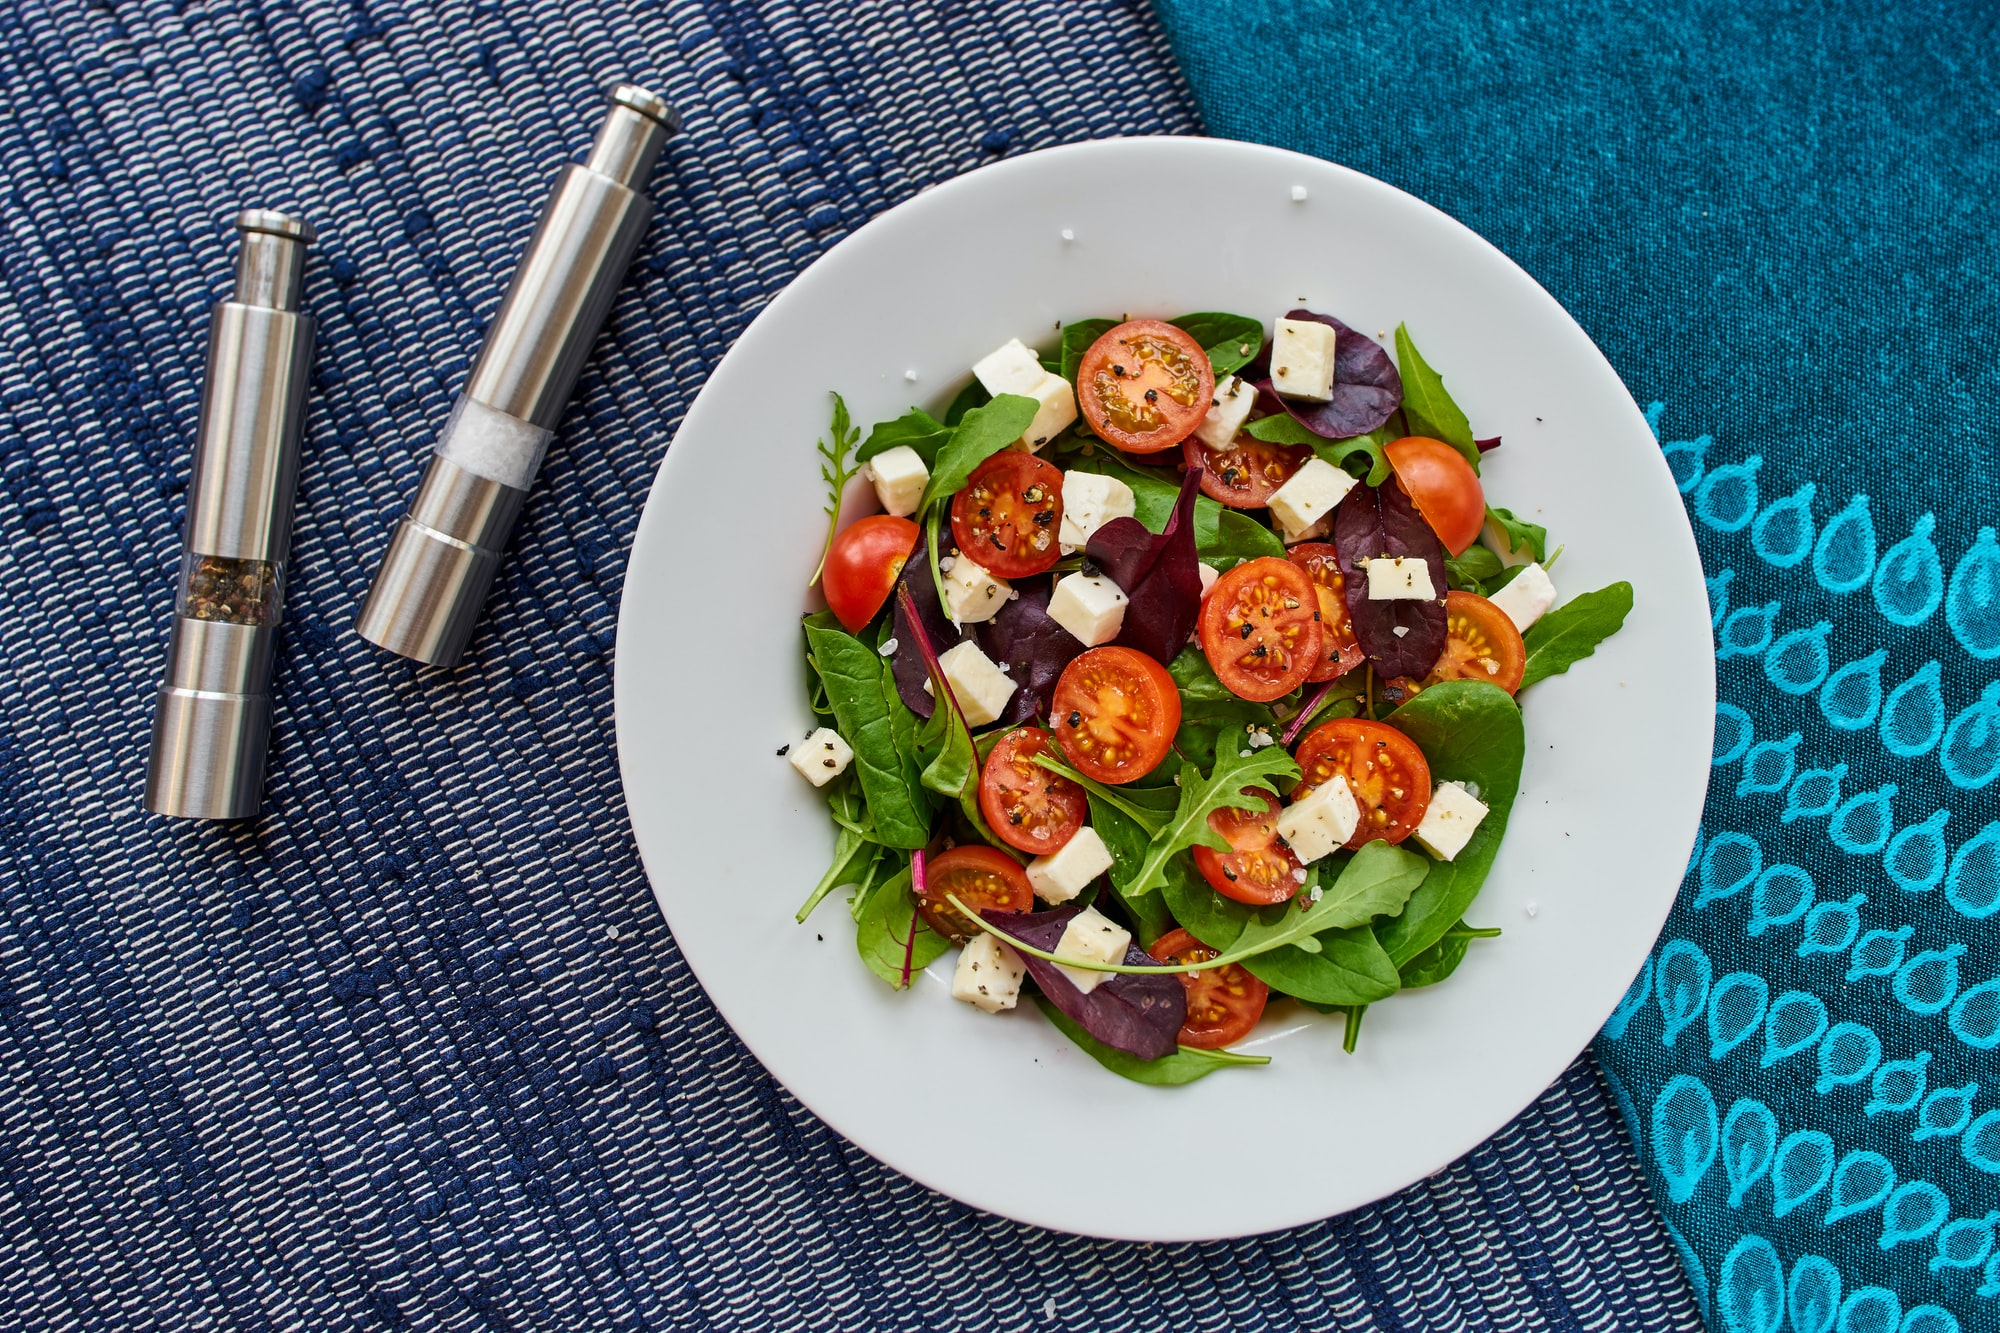 There is no better way than start your day with a tomato mozzarella salad!!